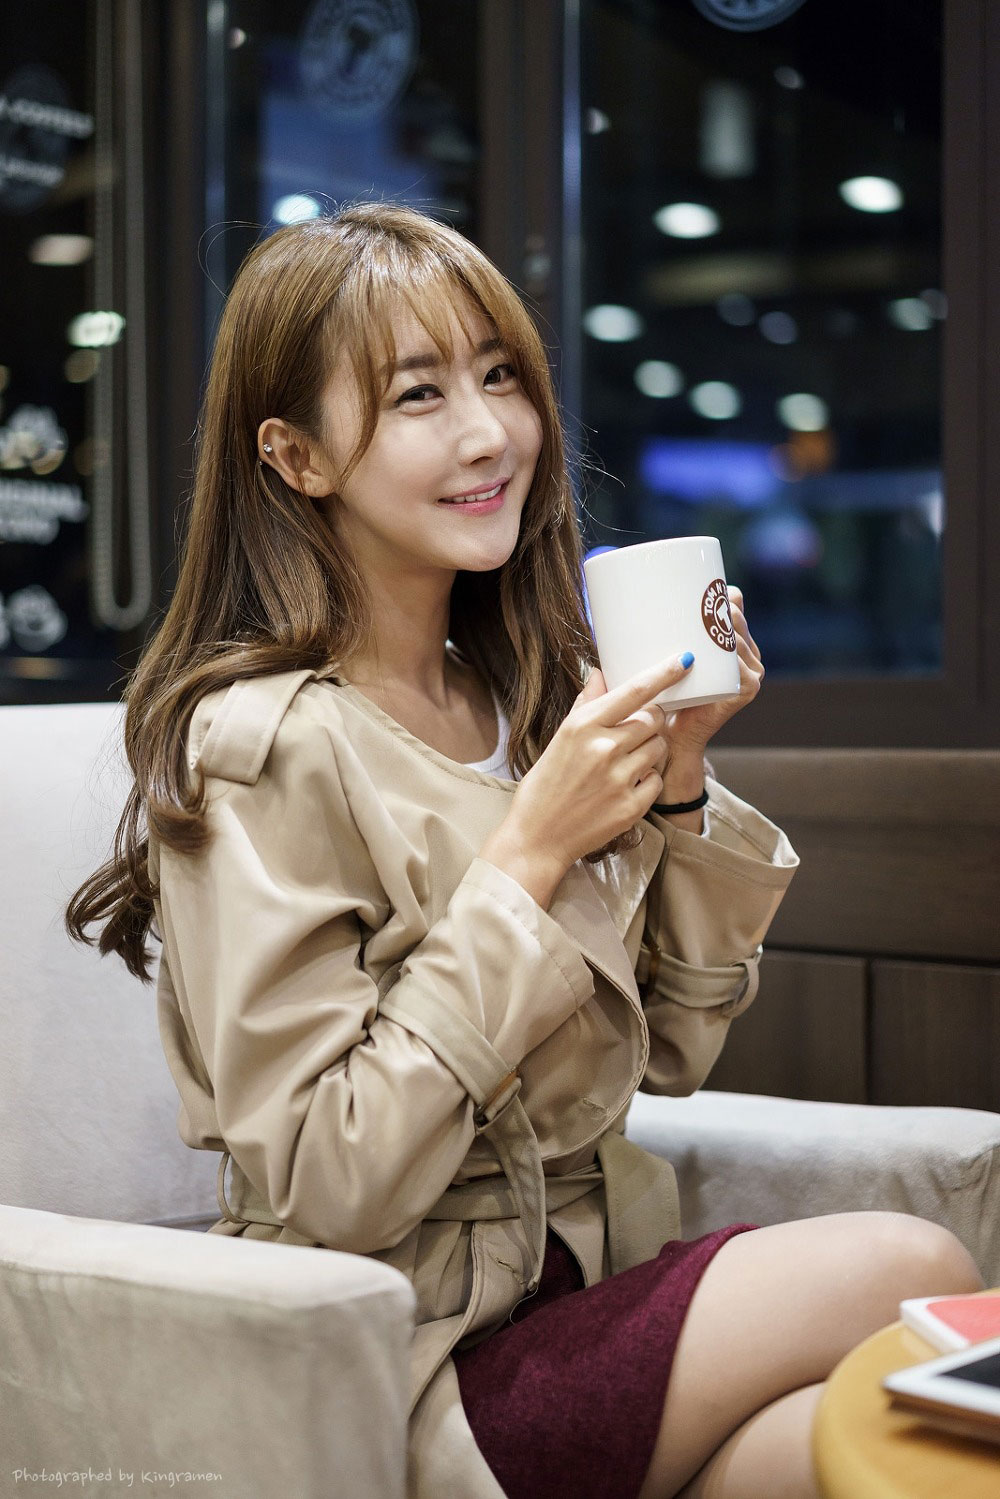 Korean model Park Hyun Sun coffee break